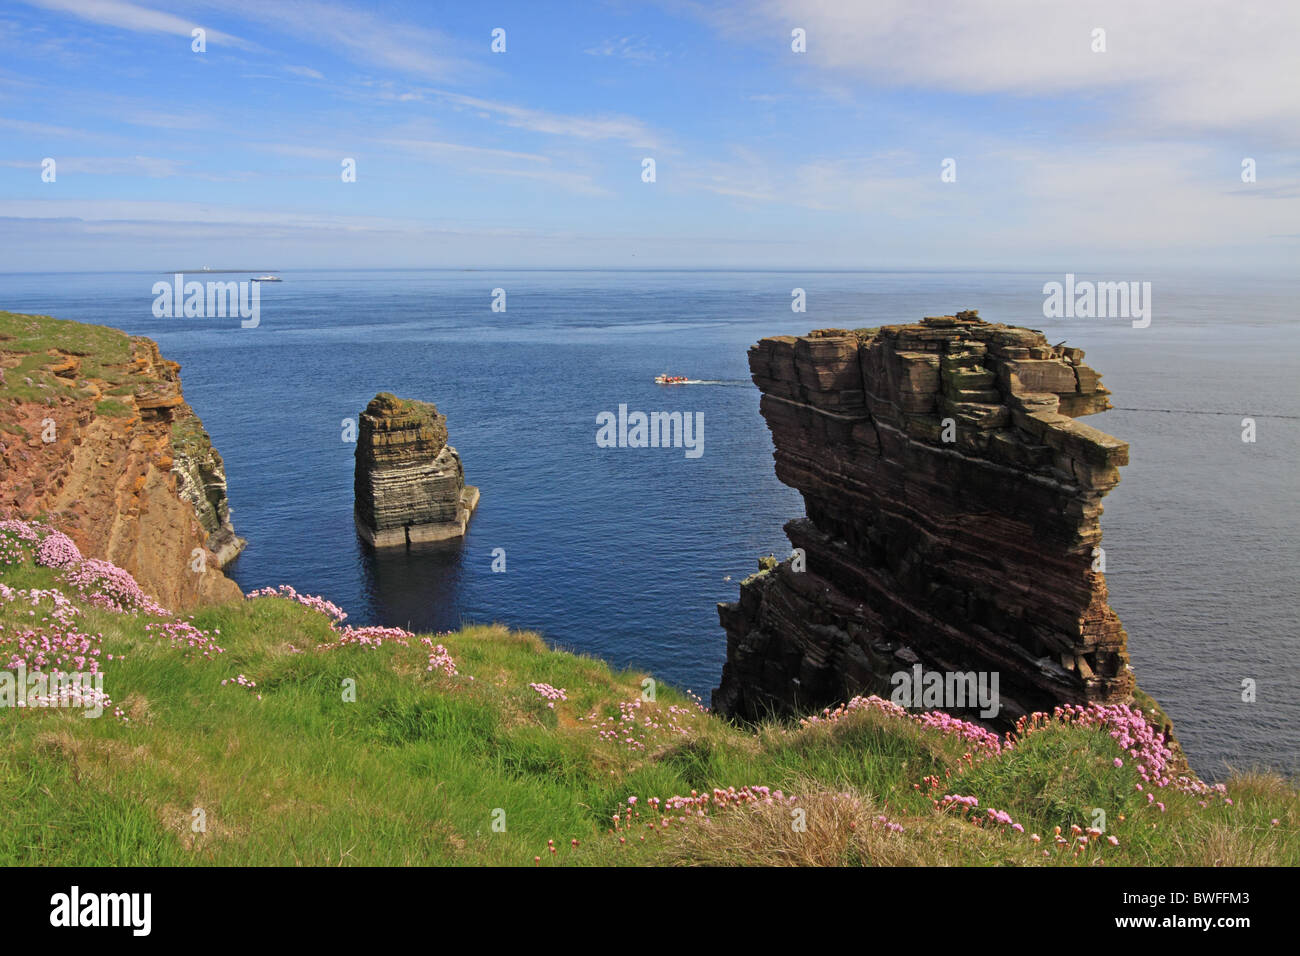 UK Scotland Highland Caithness The Pentland Firth and Rock Stack at Duncansbyhead - Stock Image